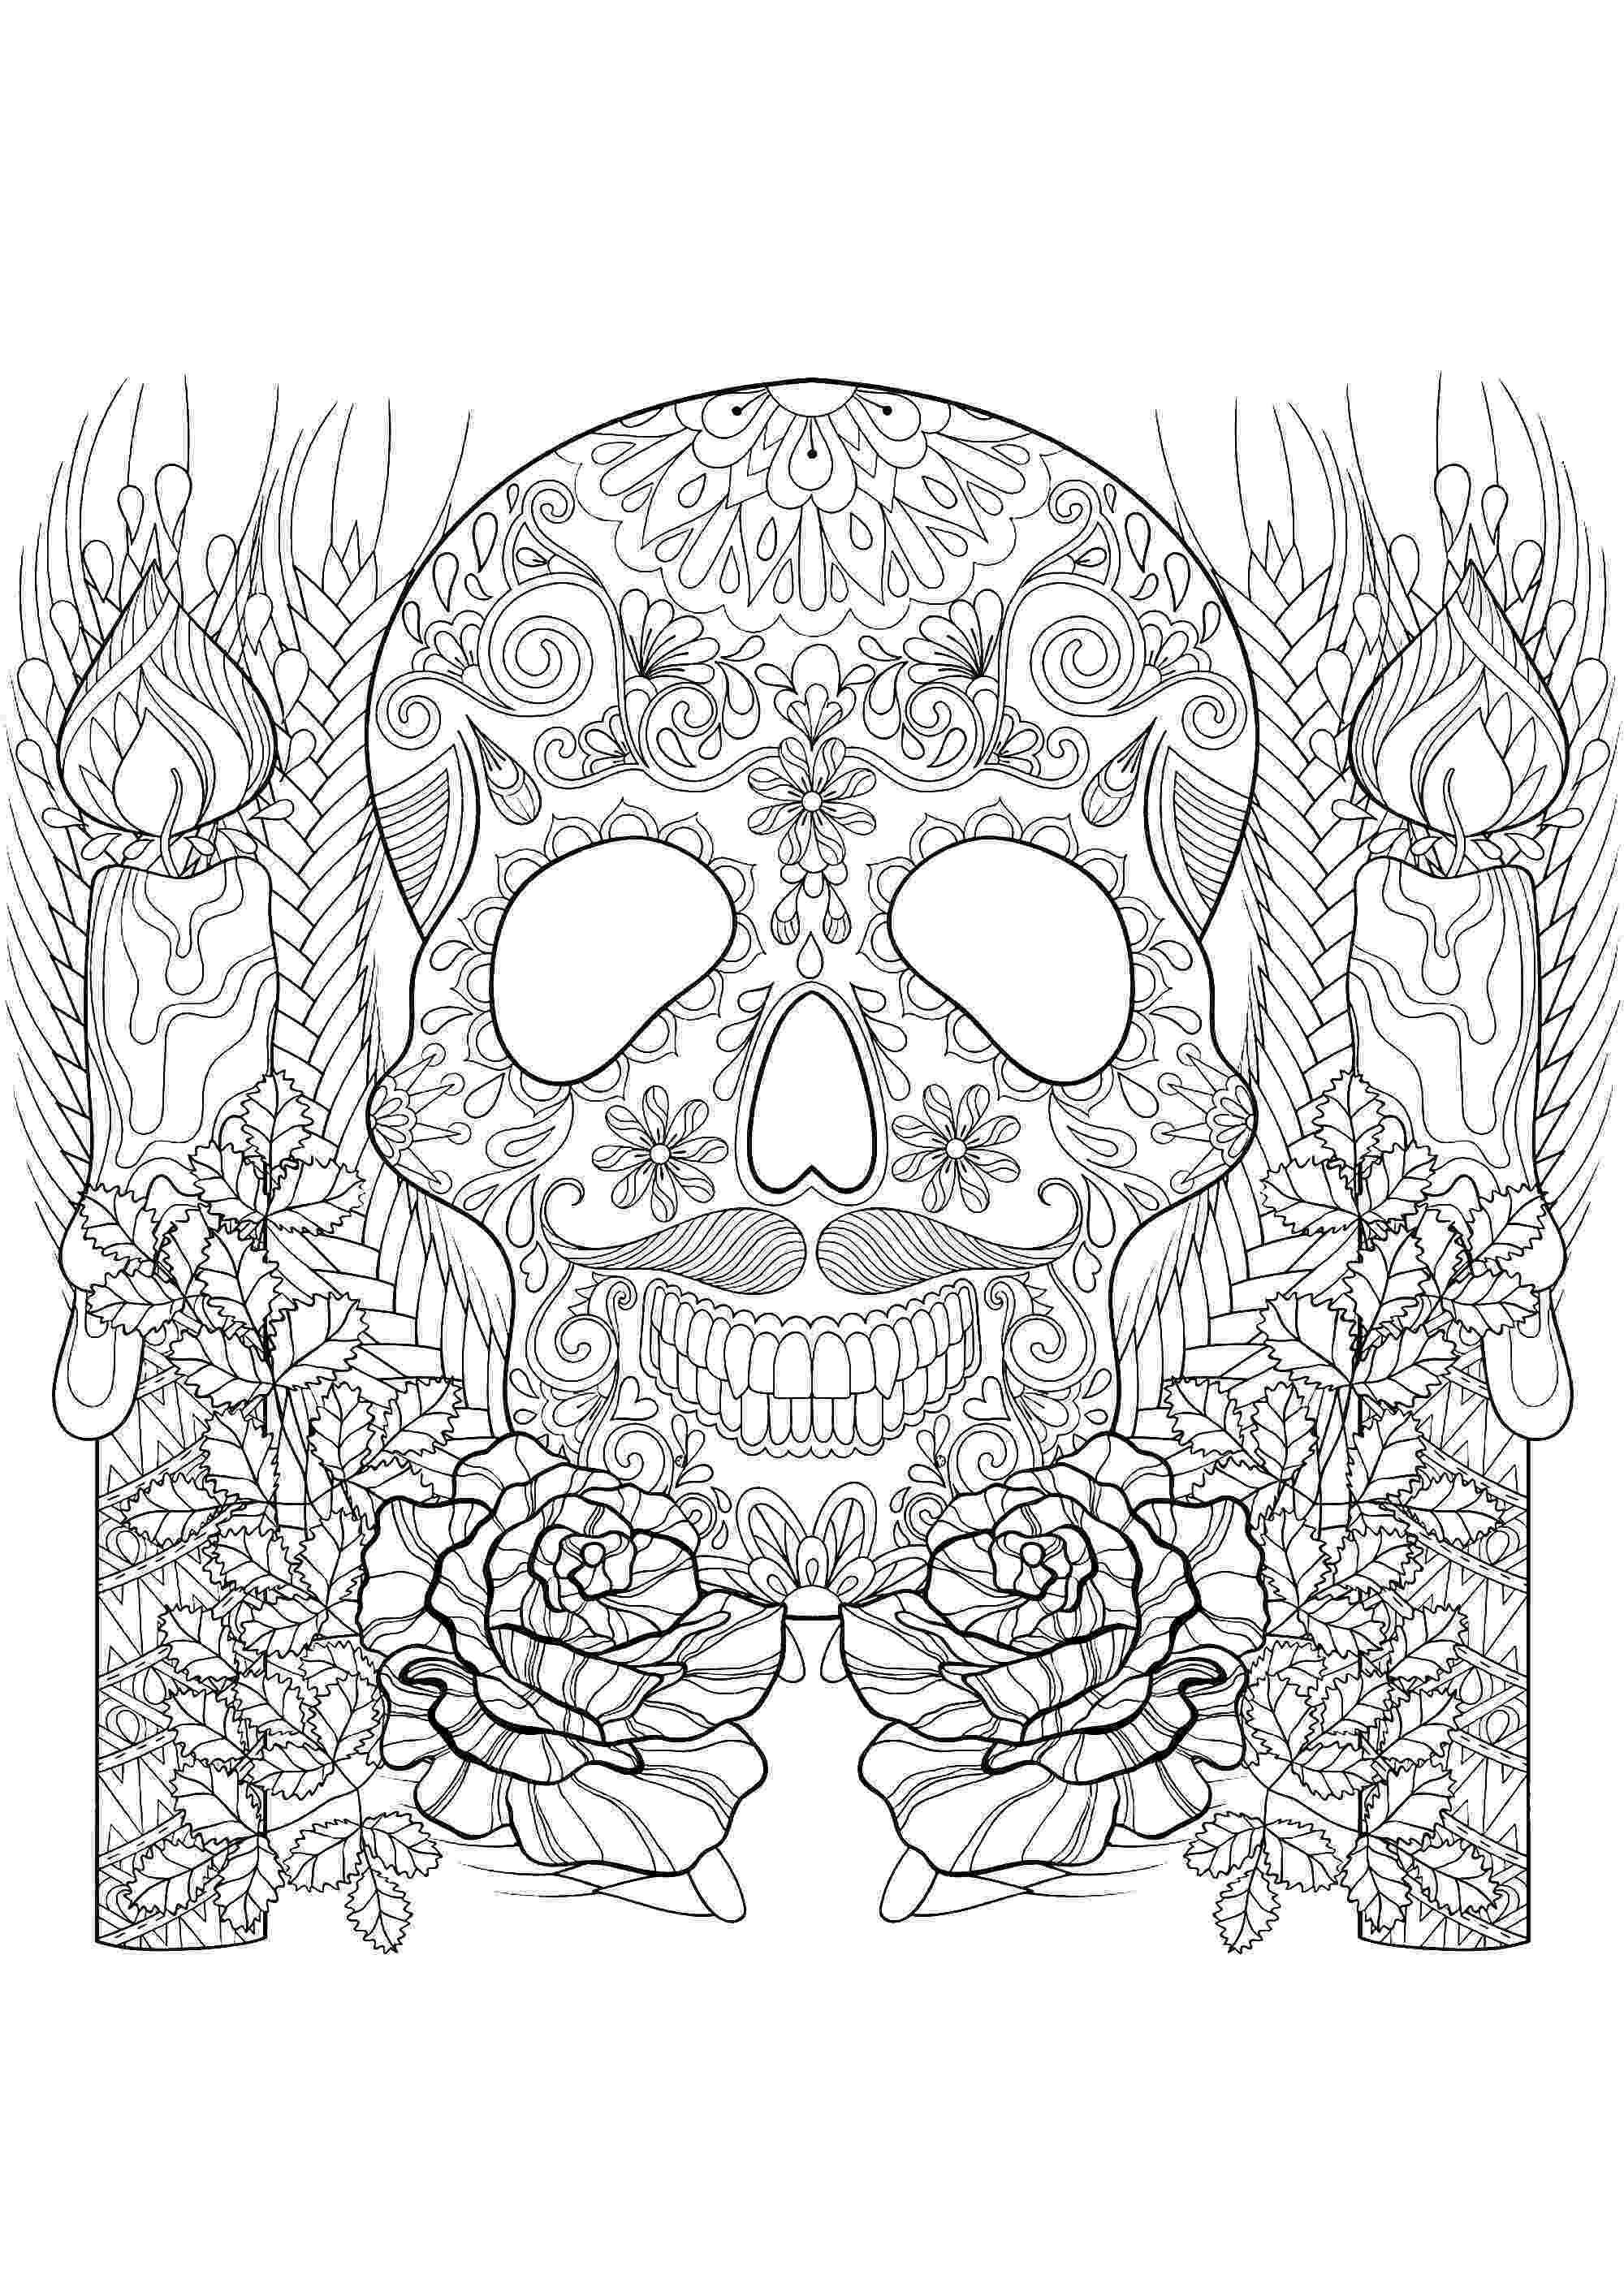 coloring pages for adults halloween halloween pixie fairy coloring page woo jr kids activities for halloween coloring adults pages